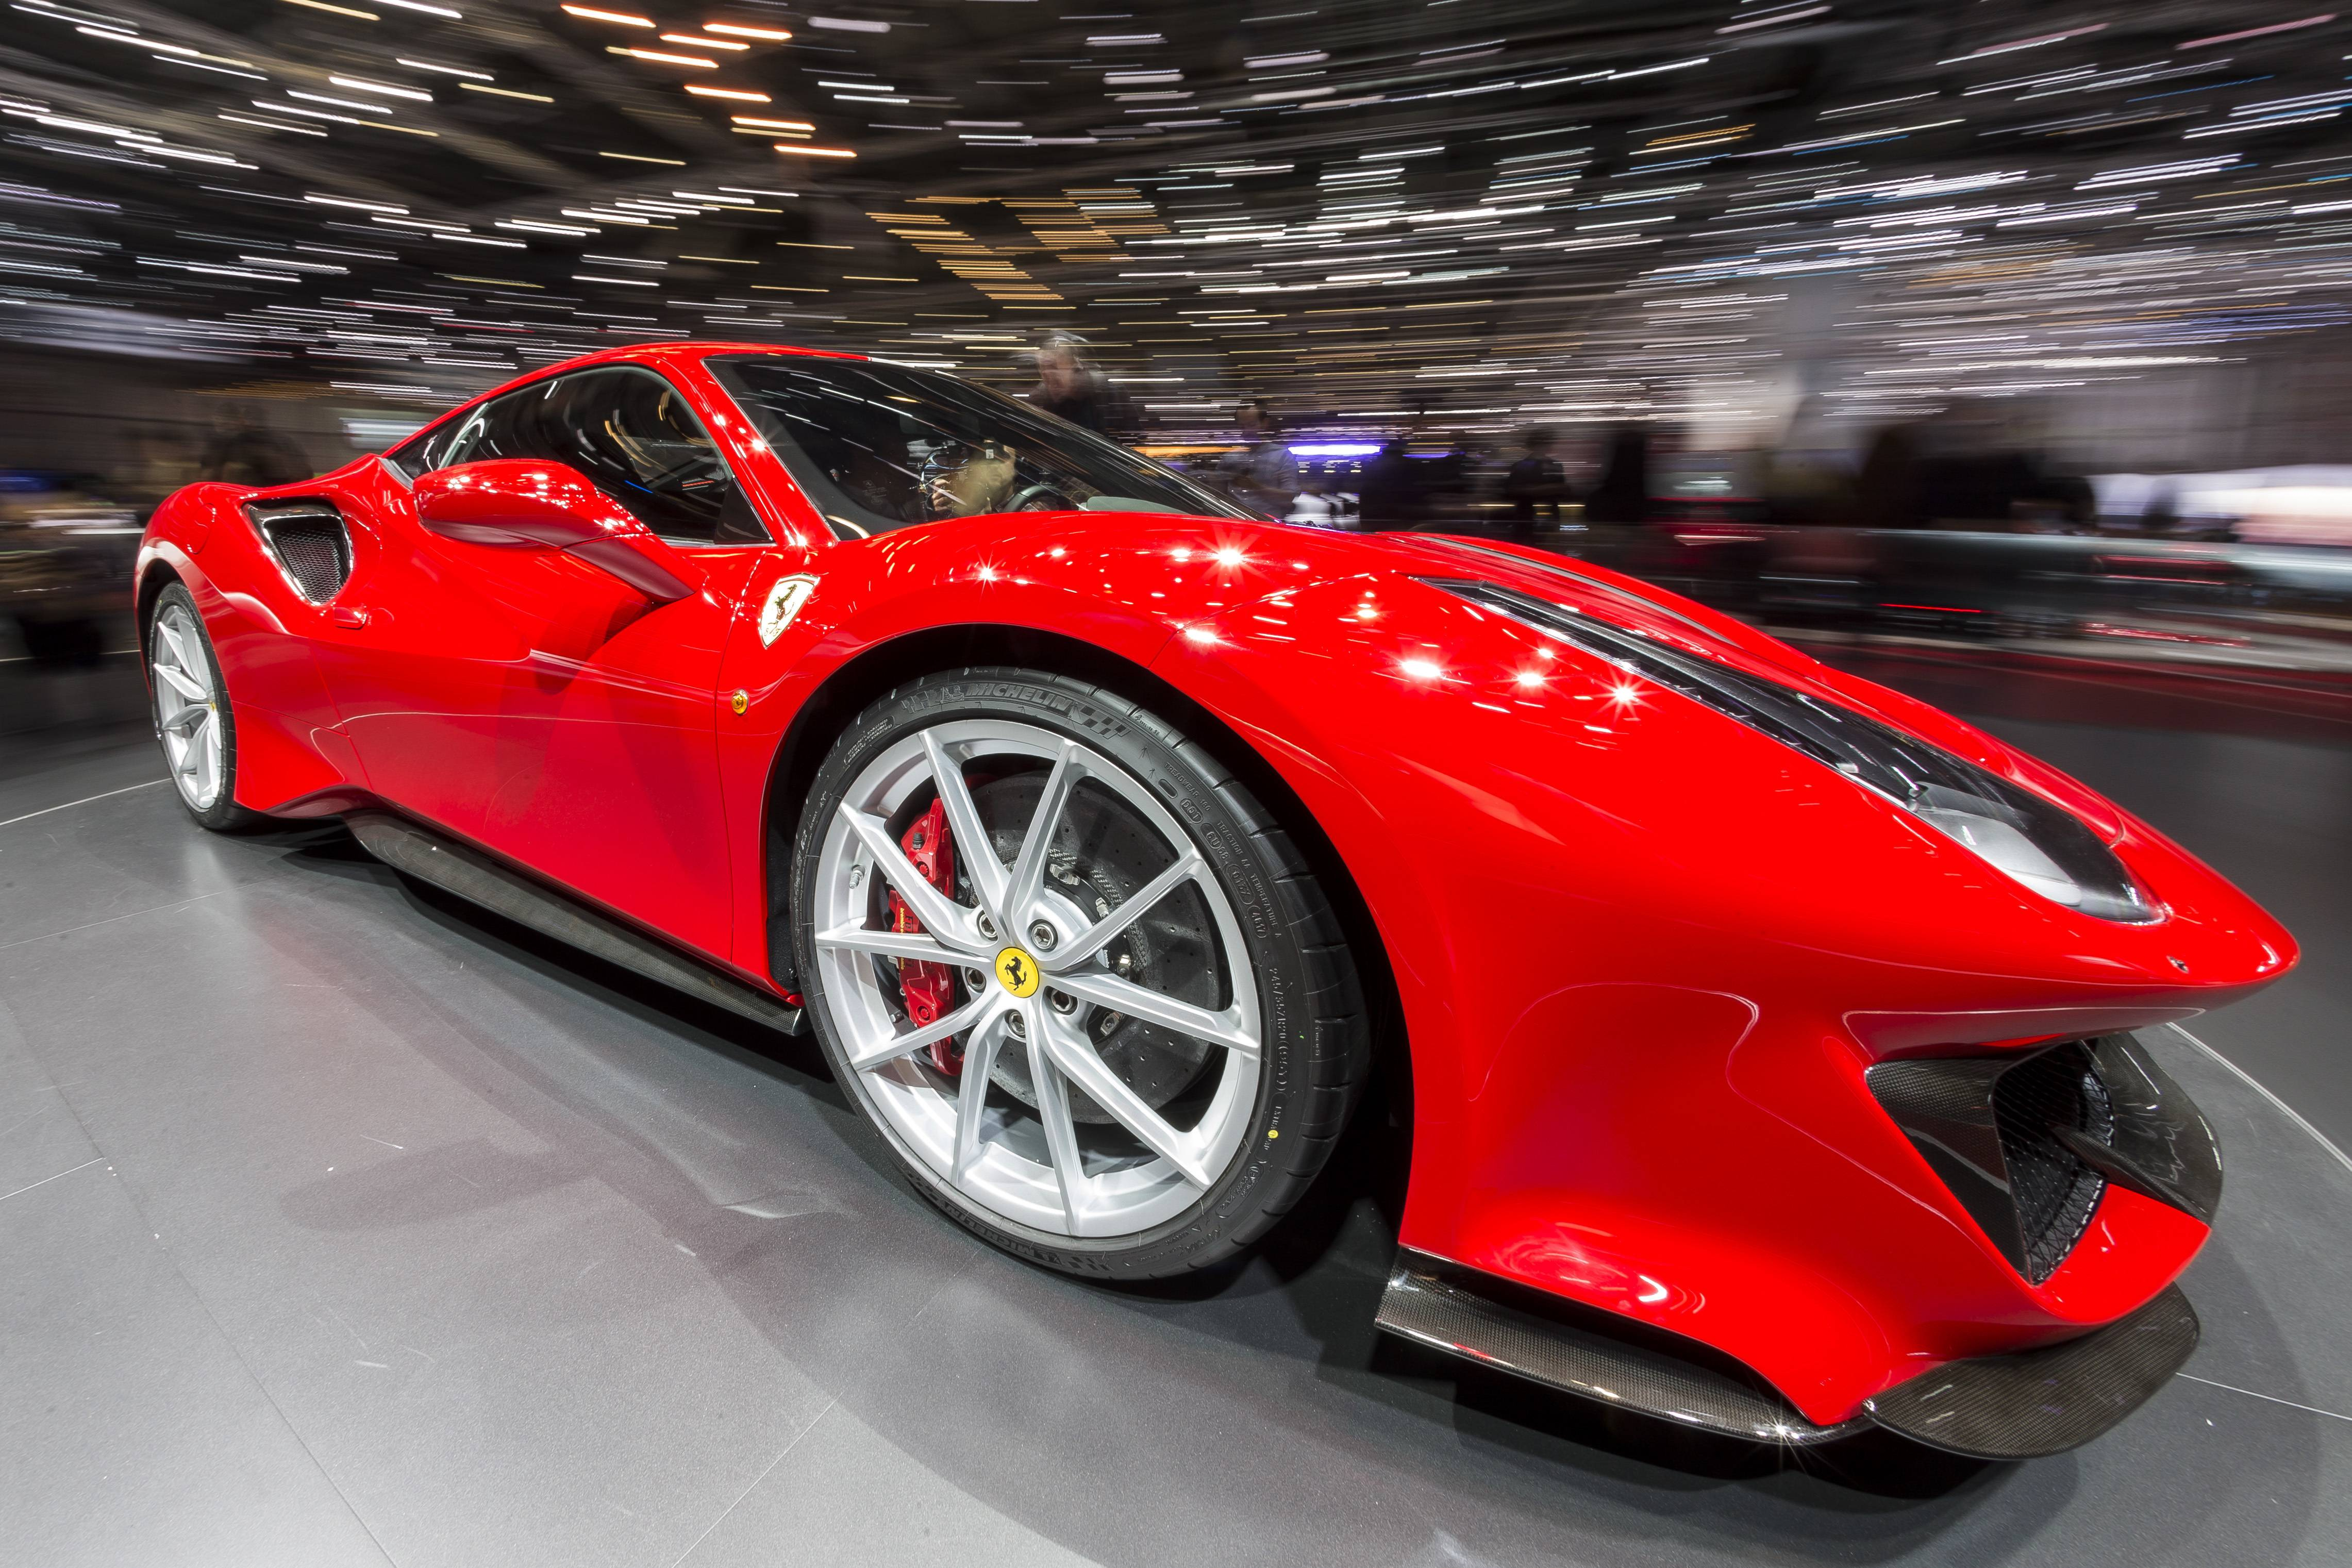 The New Ferrari 488 Pista is presented during the press day prior to the opening of the 88th Geneva International Motor Show in Geneva, Switzerland.